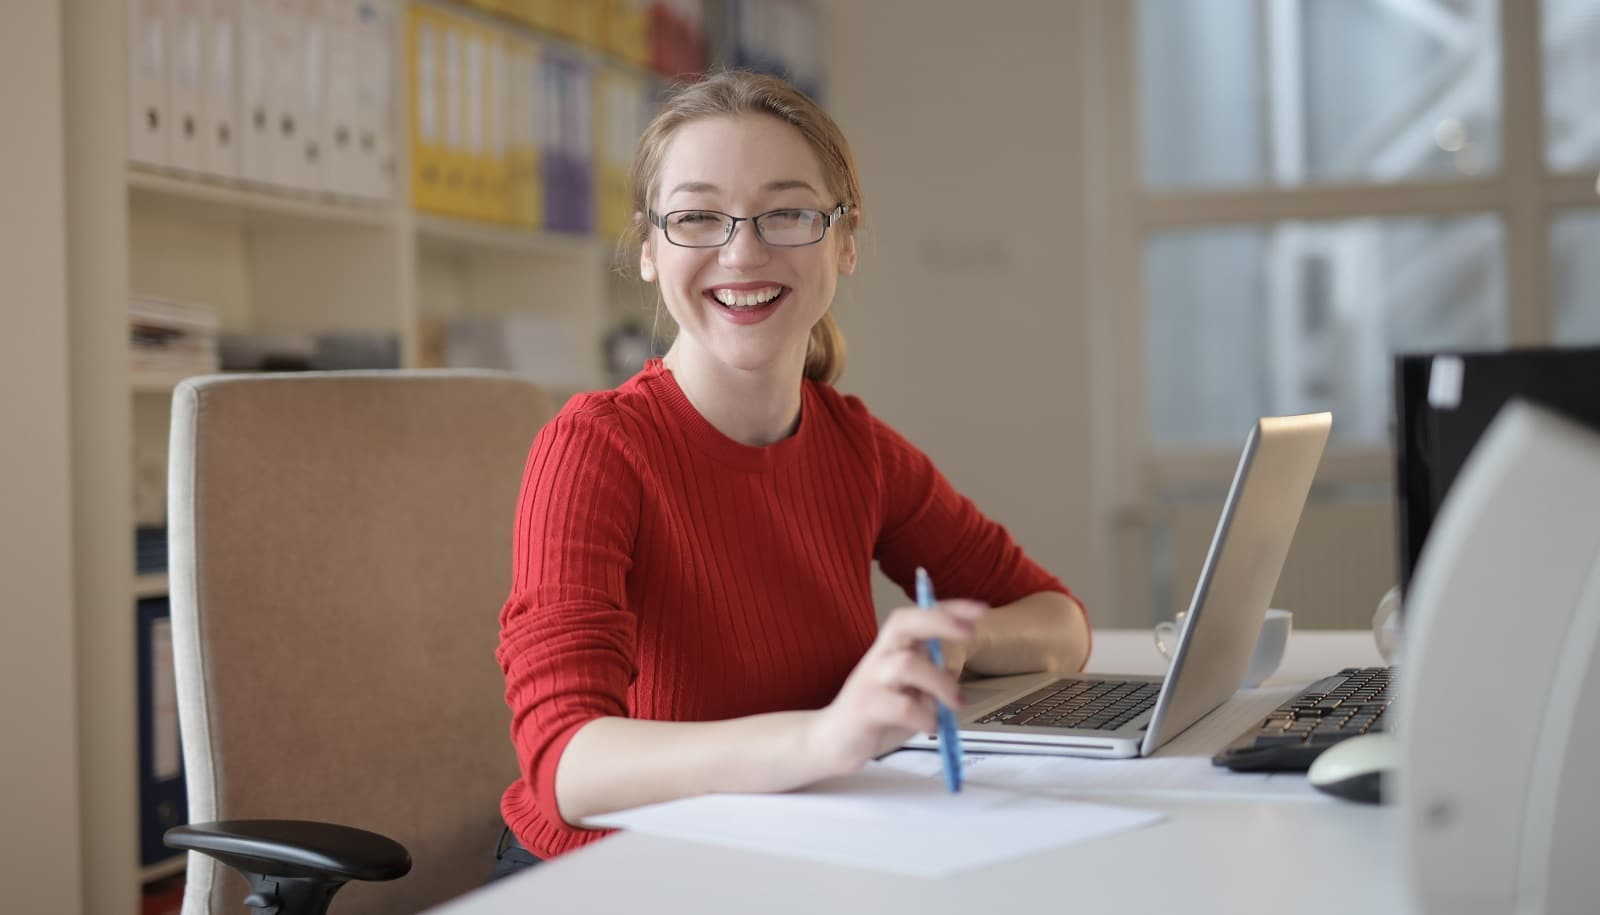 Student smiling while typing on her laptop